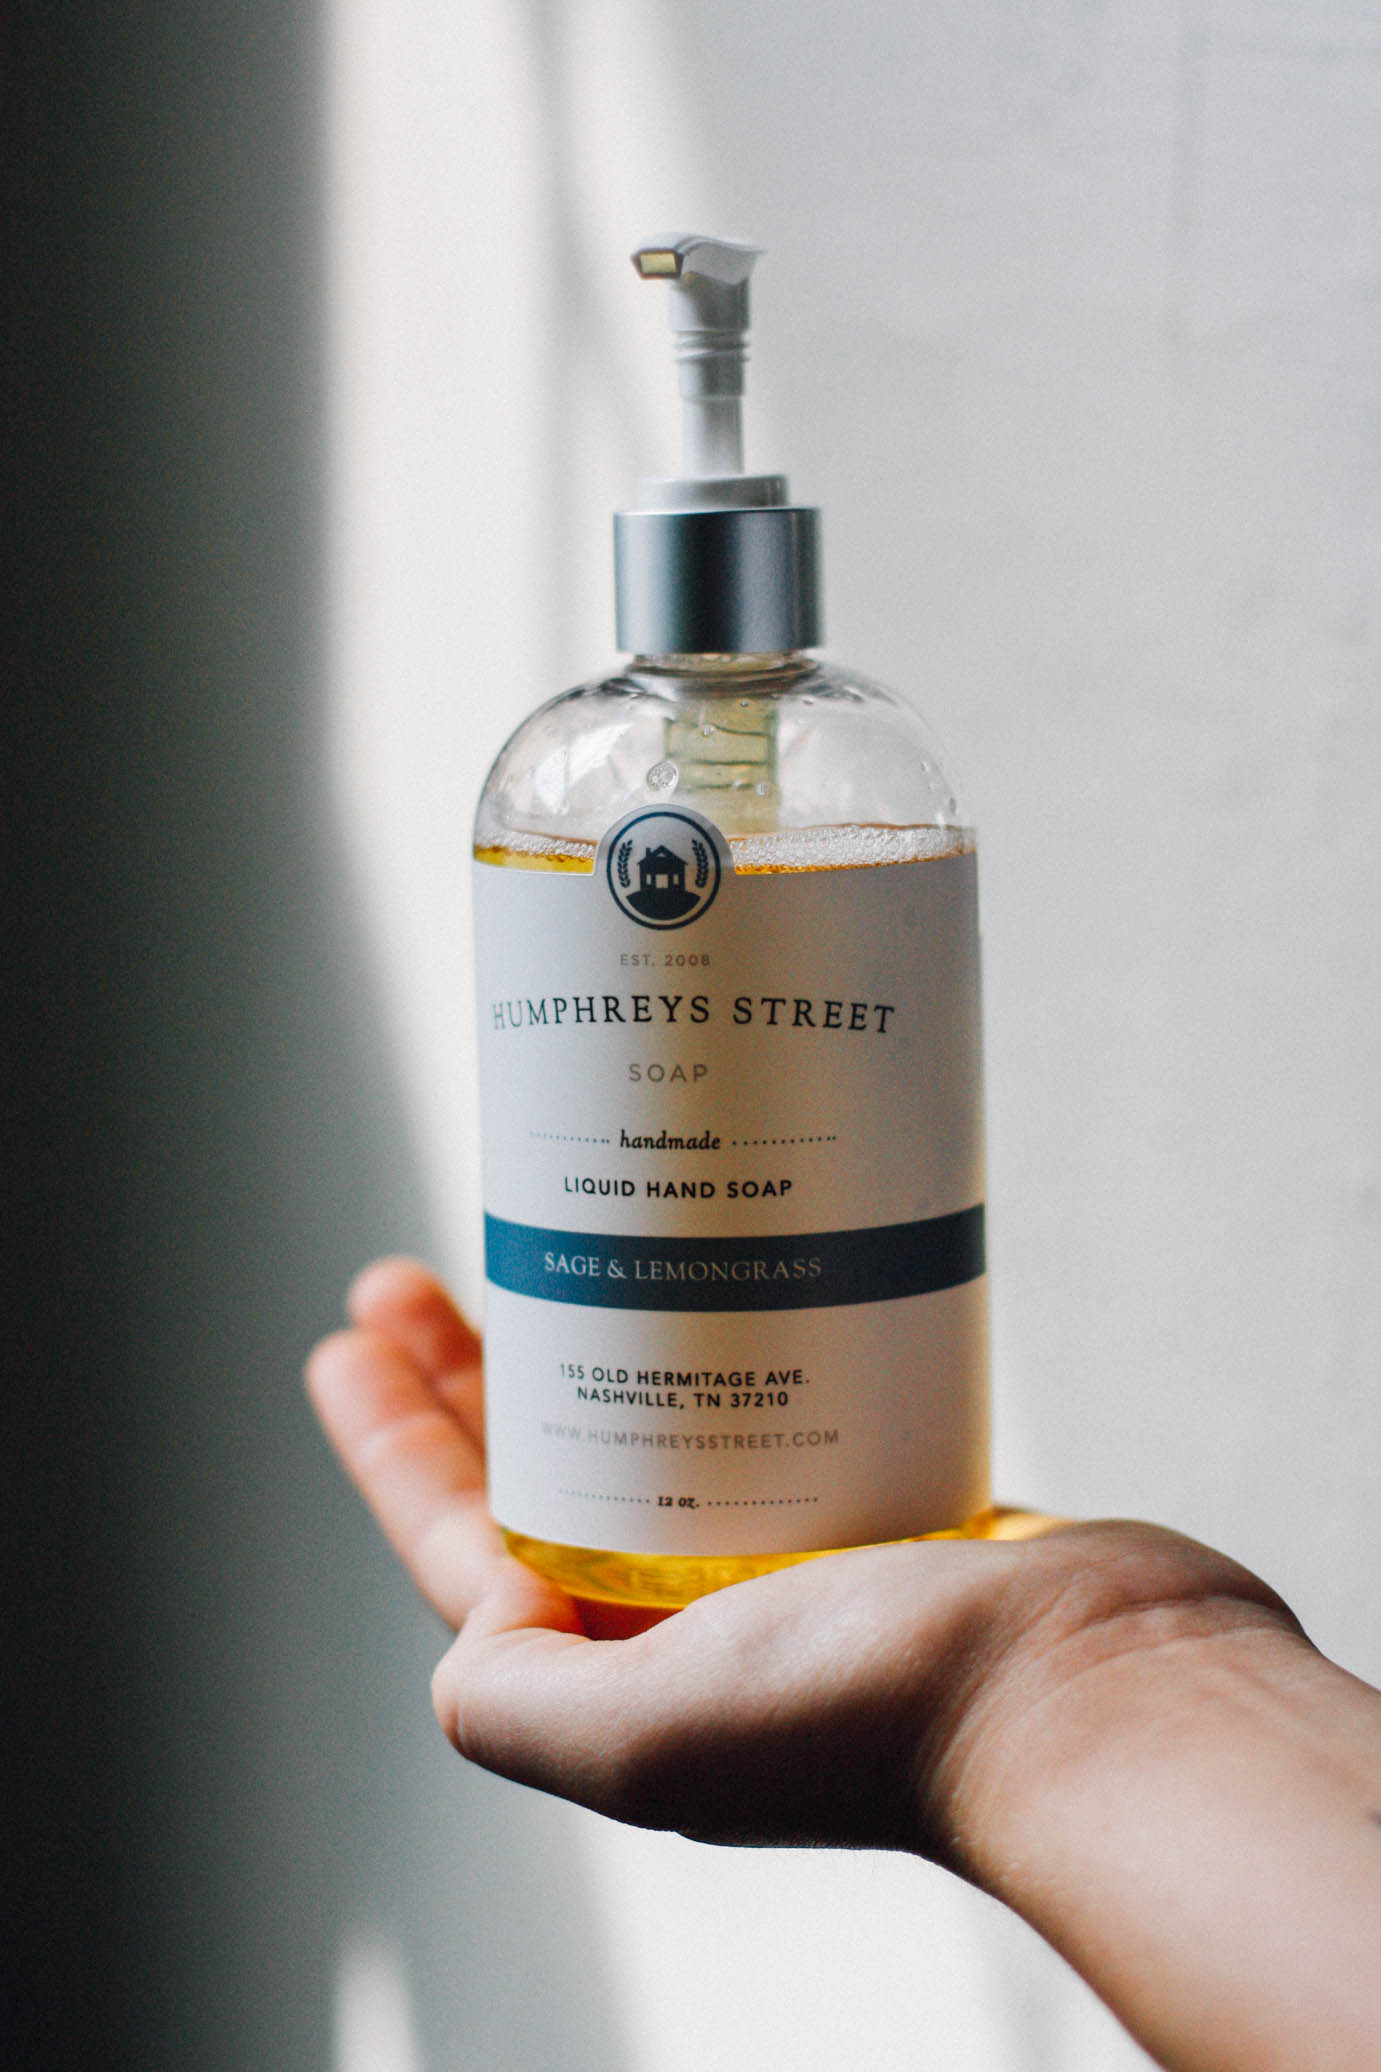 humphreys street natural liquid hand soap